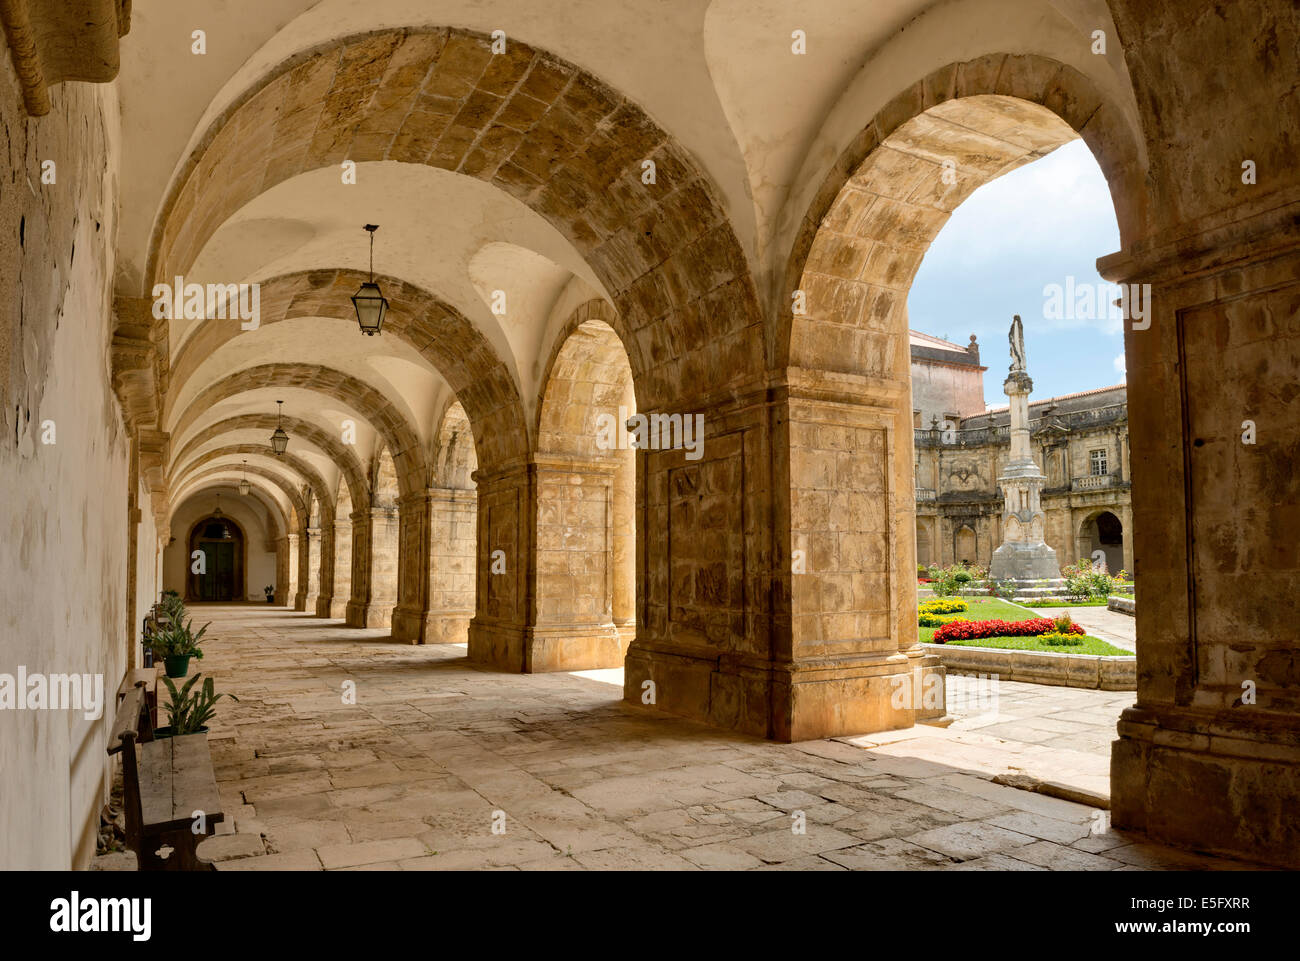 Mosteiro De Santa Clara A Velha High Resolution Stock Photography And Images Alamy